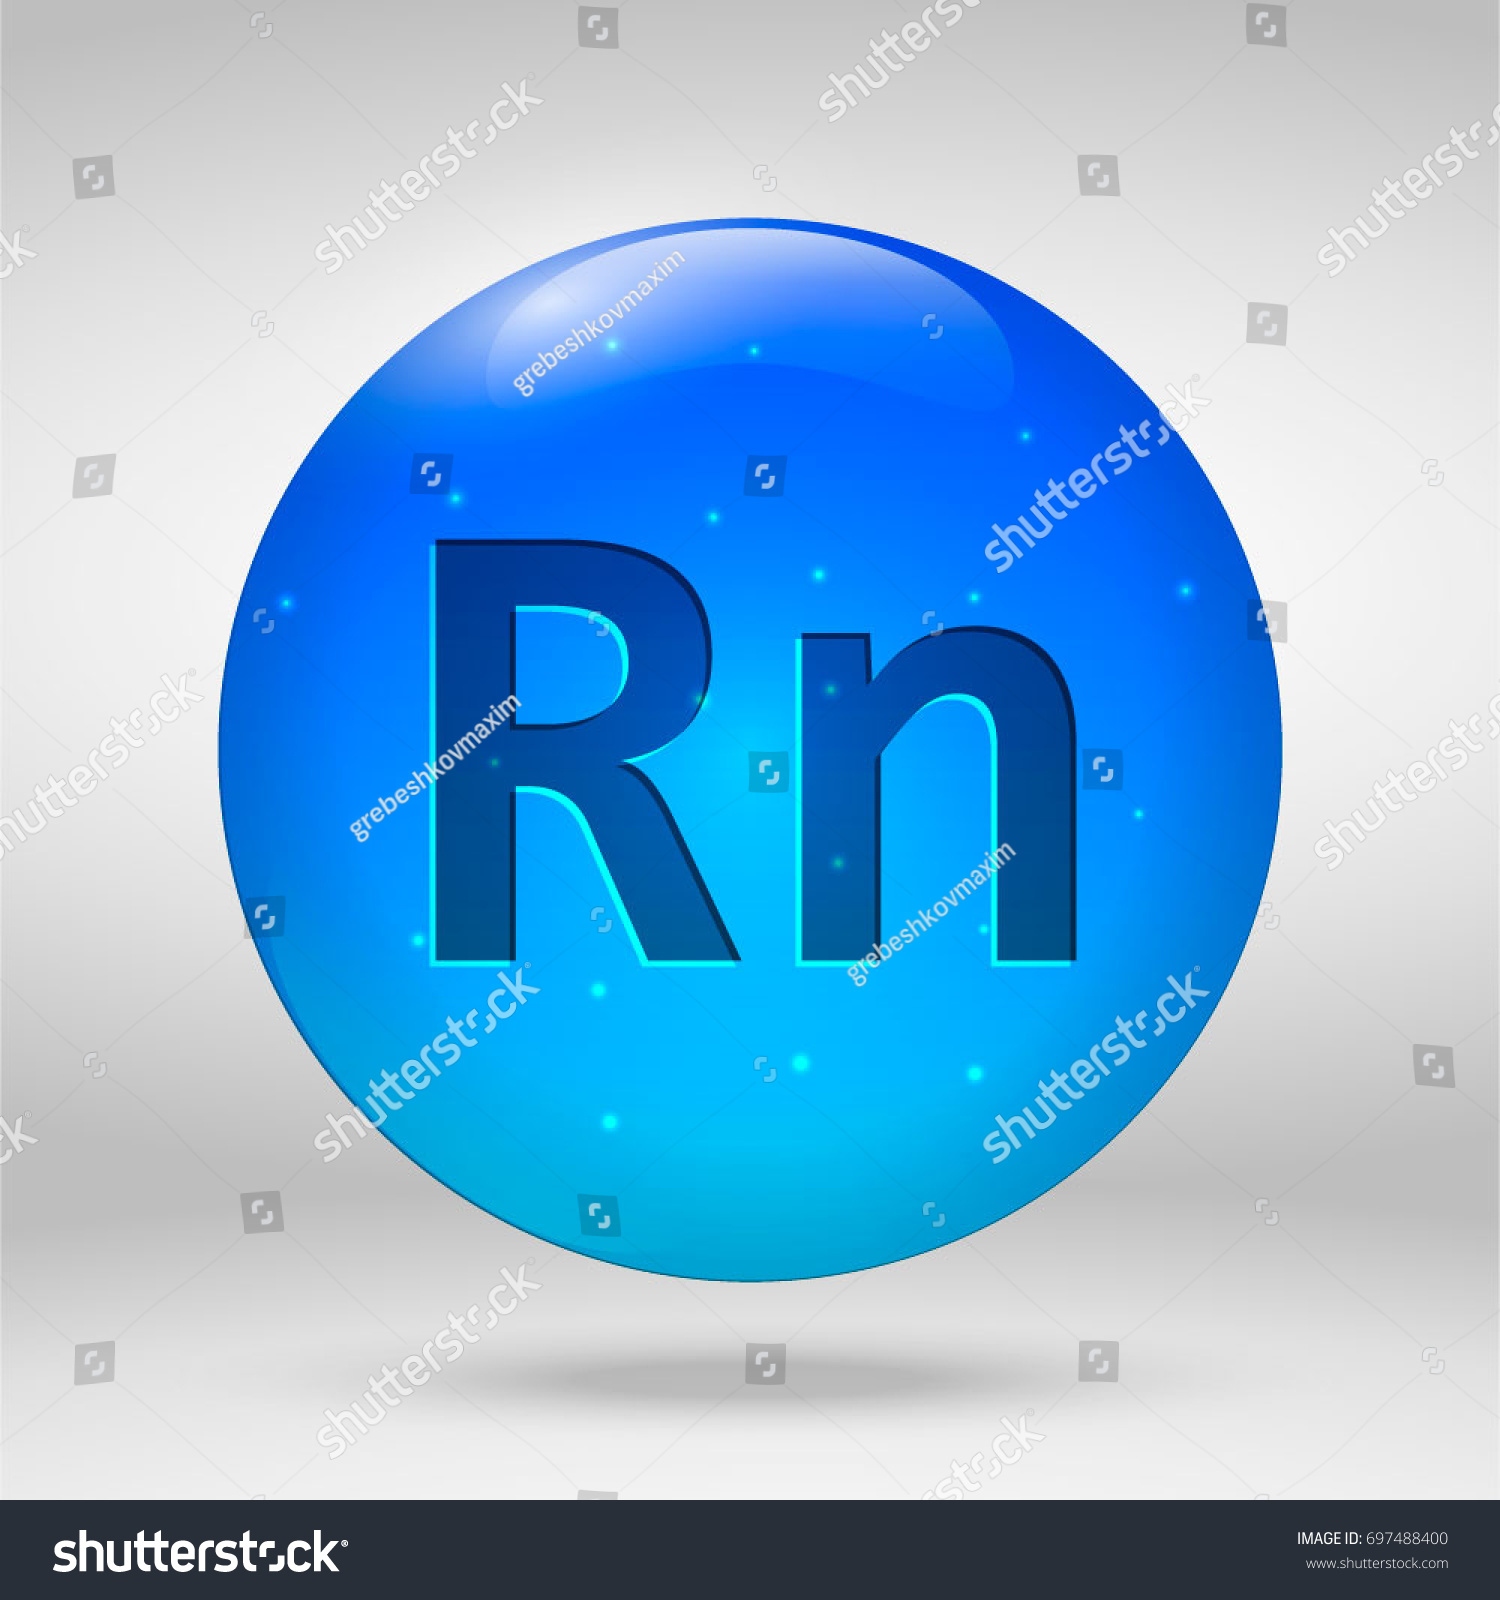 Rn element periodic table image collections periodic table images radon element periodic table vector 3d stock vector 697488400 radon element of the periodic table vector gamestrikefo Image collections